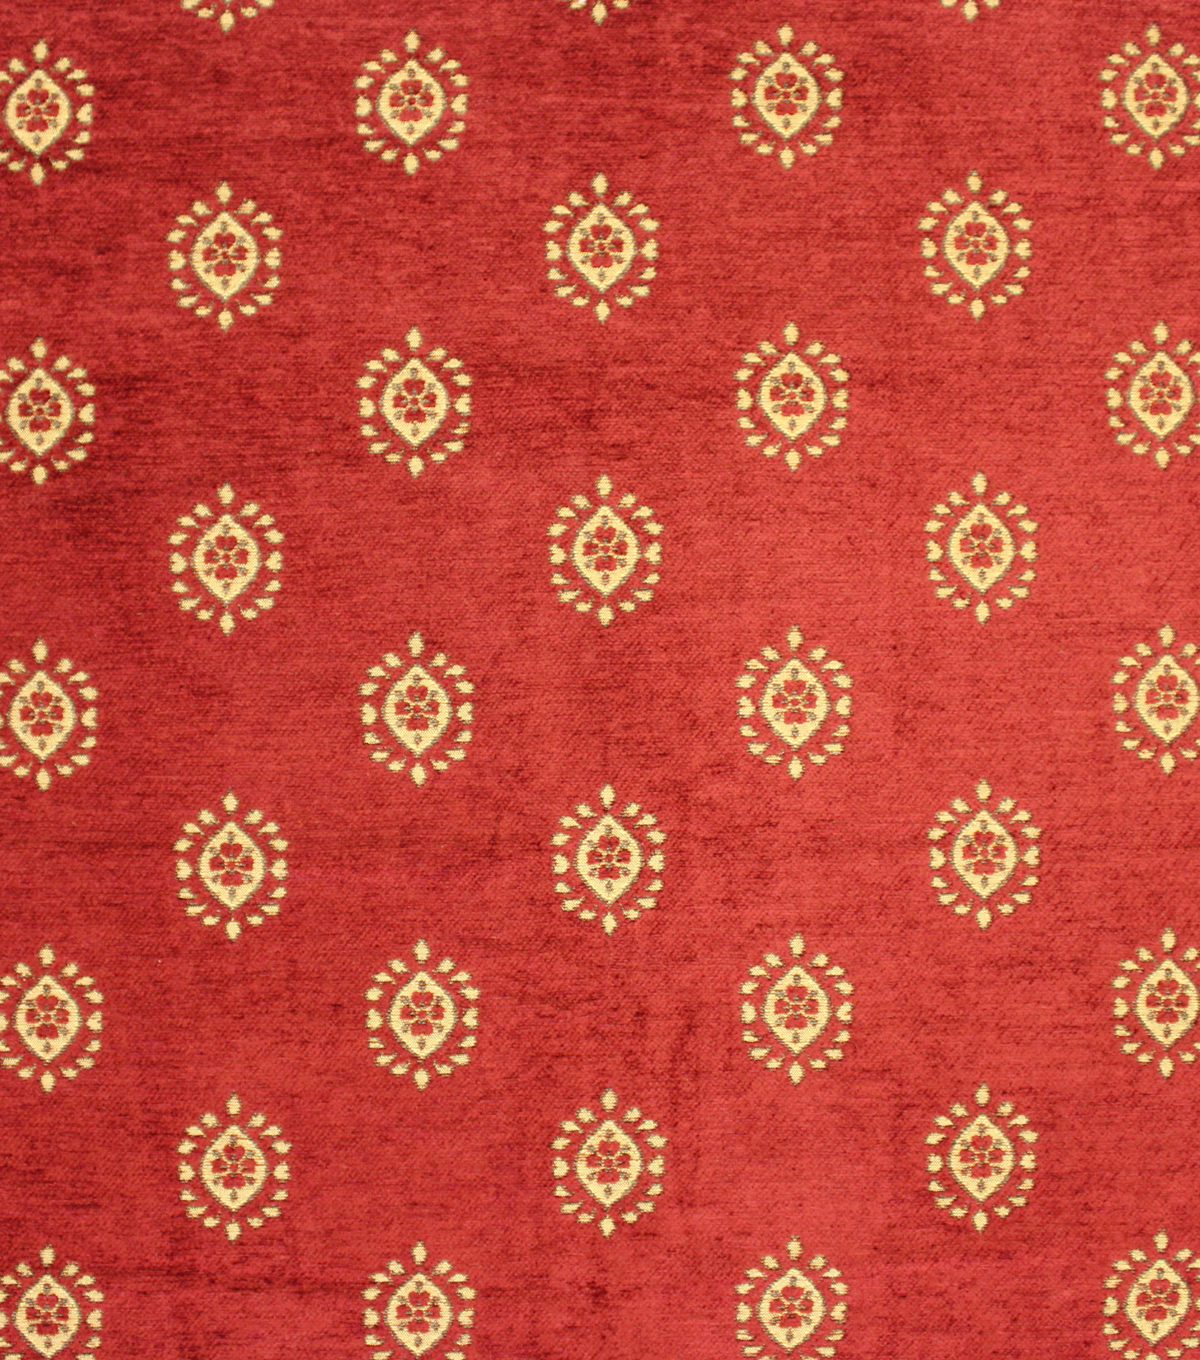 Upholstery Fabric-Barrow M6696-5479 Jewel